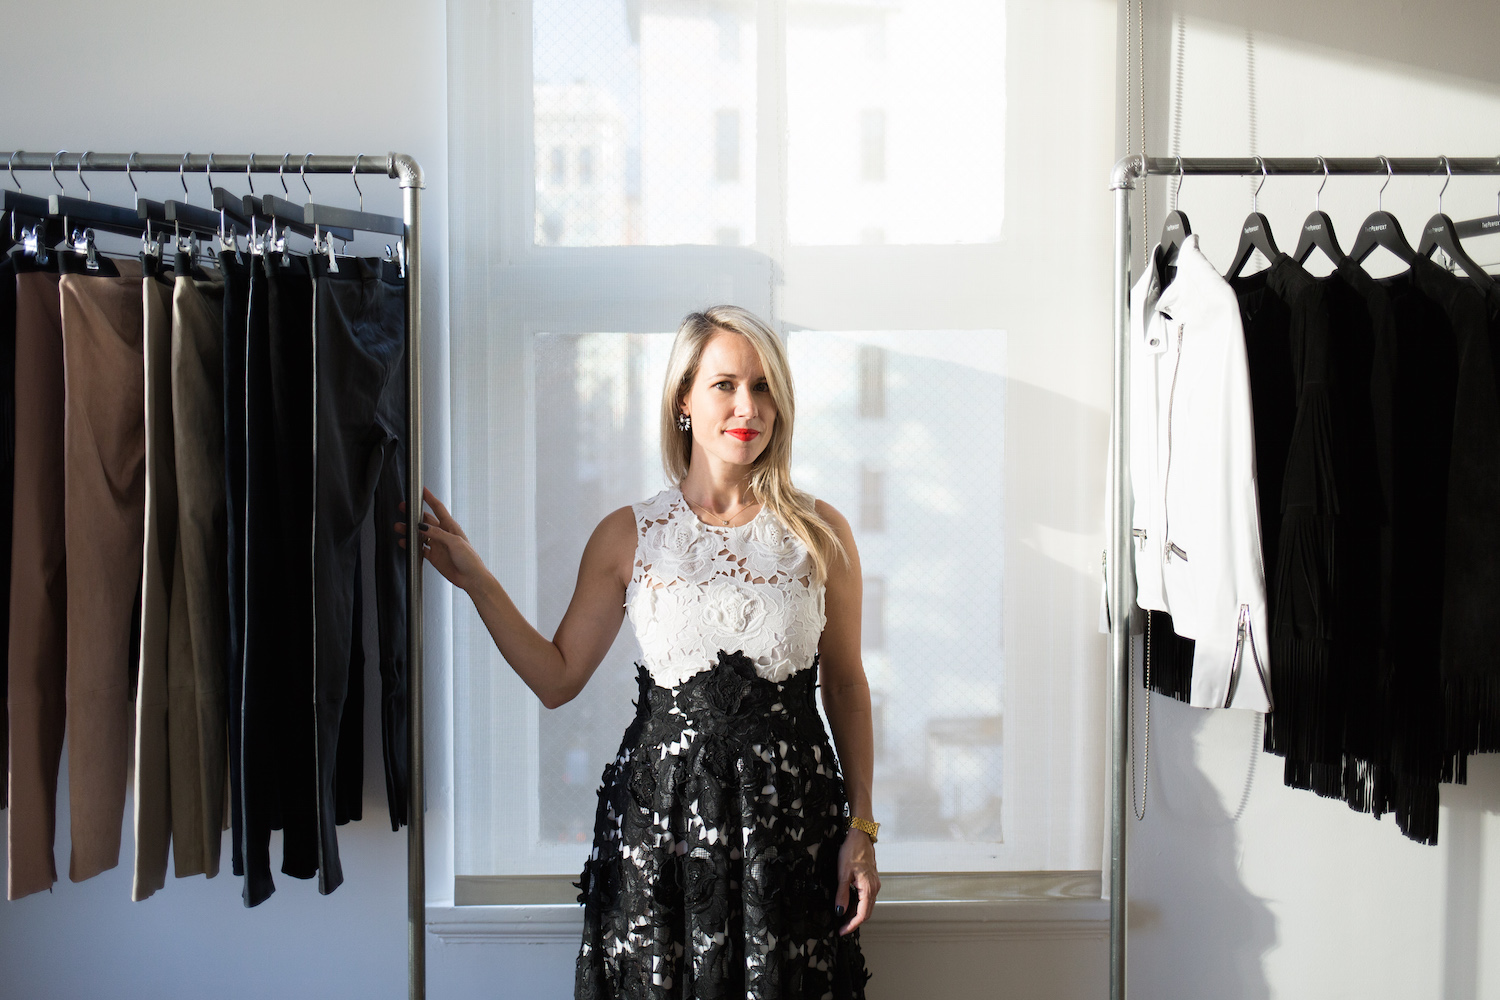 """""""The first look is a black and white color blocked lace midi length  Michelle dress. I love festive dressing each season, it's a time to embrace the idea of getting dressed up."""""""